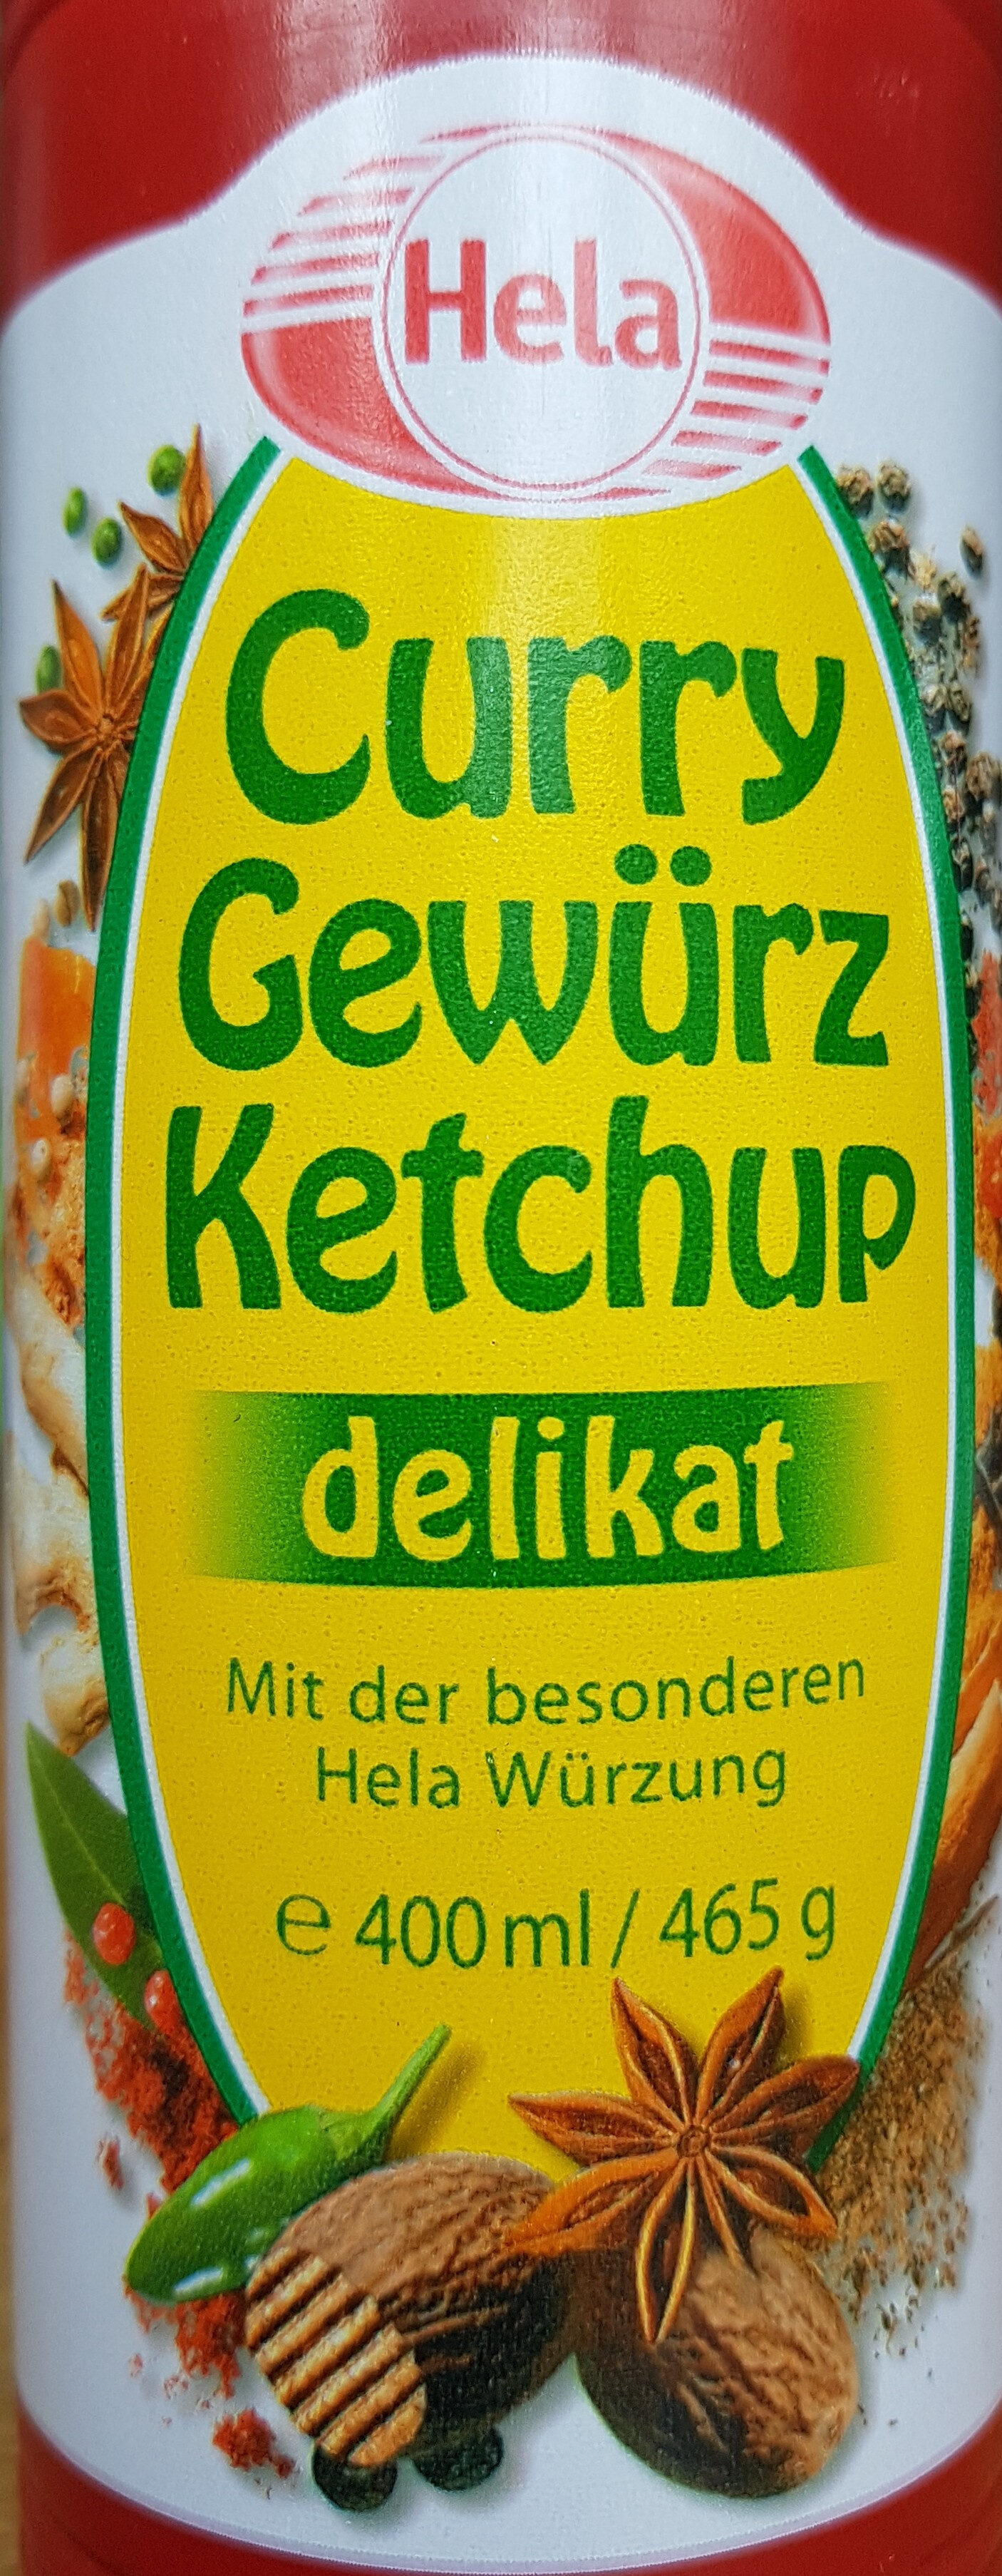 Curry Gewürz Ketchup delikat - Product